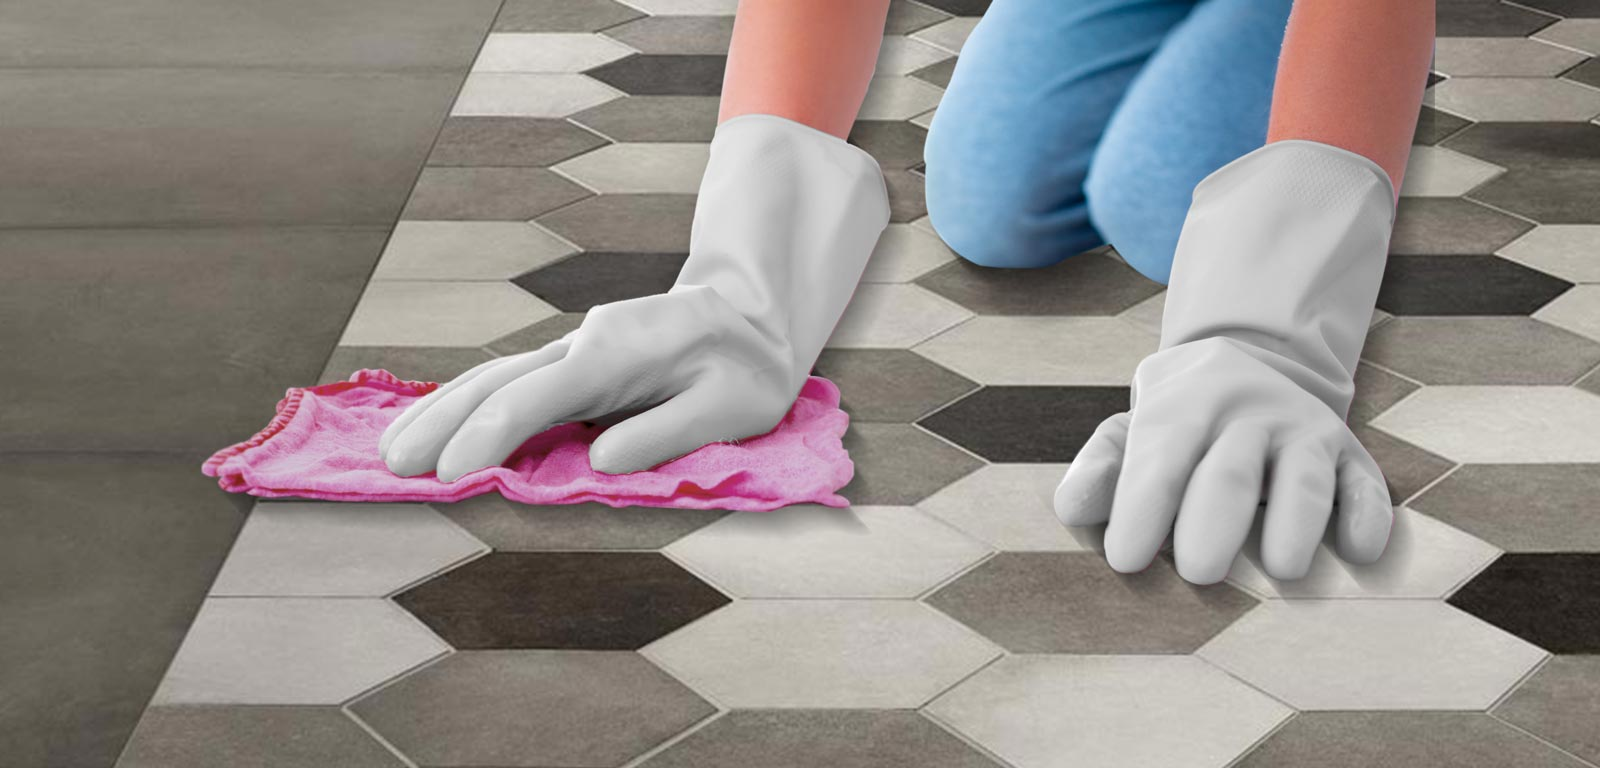 How to clean the joints between ceramic tiles